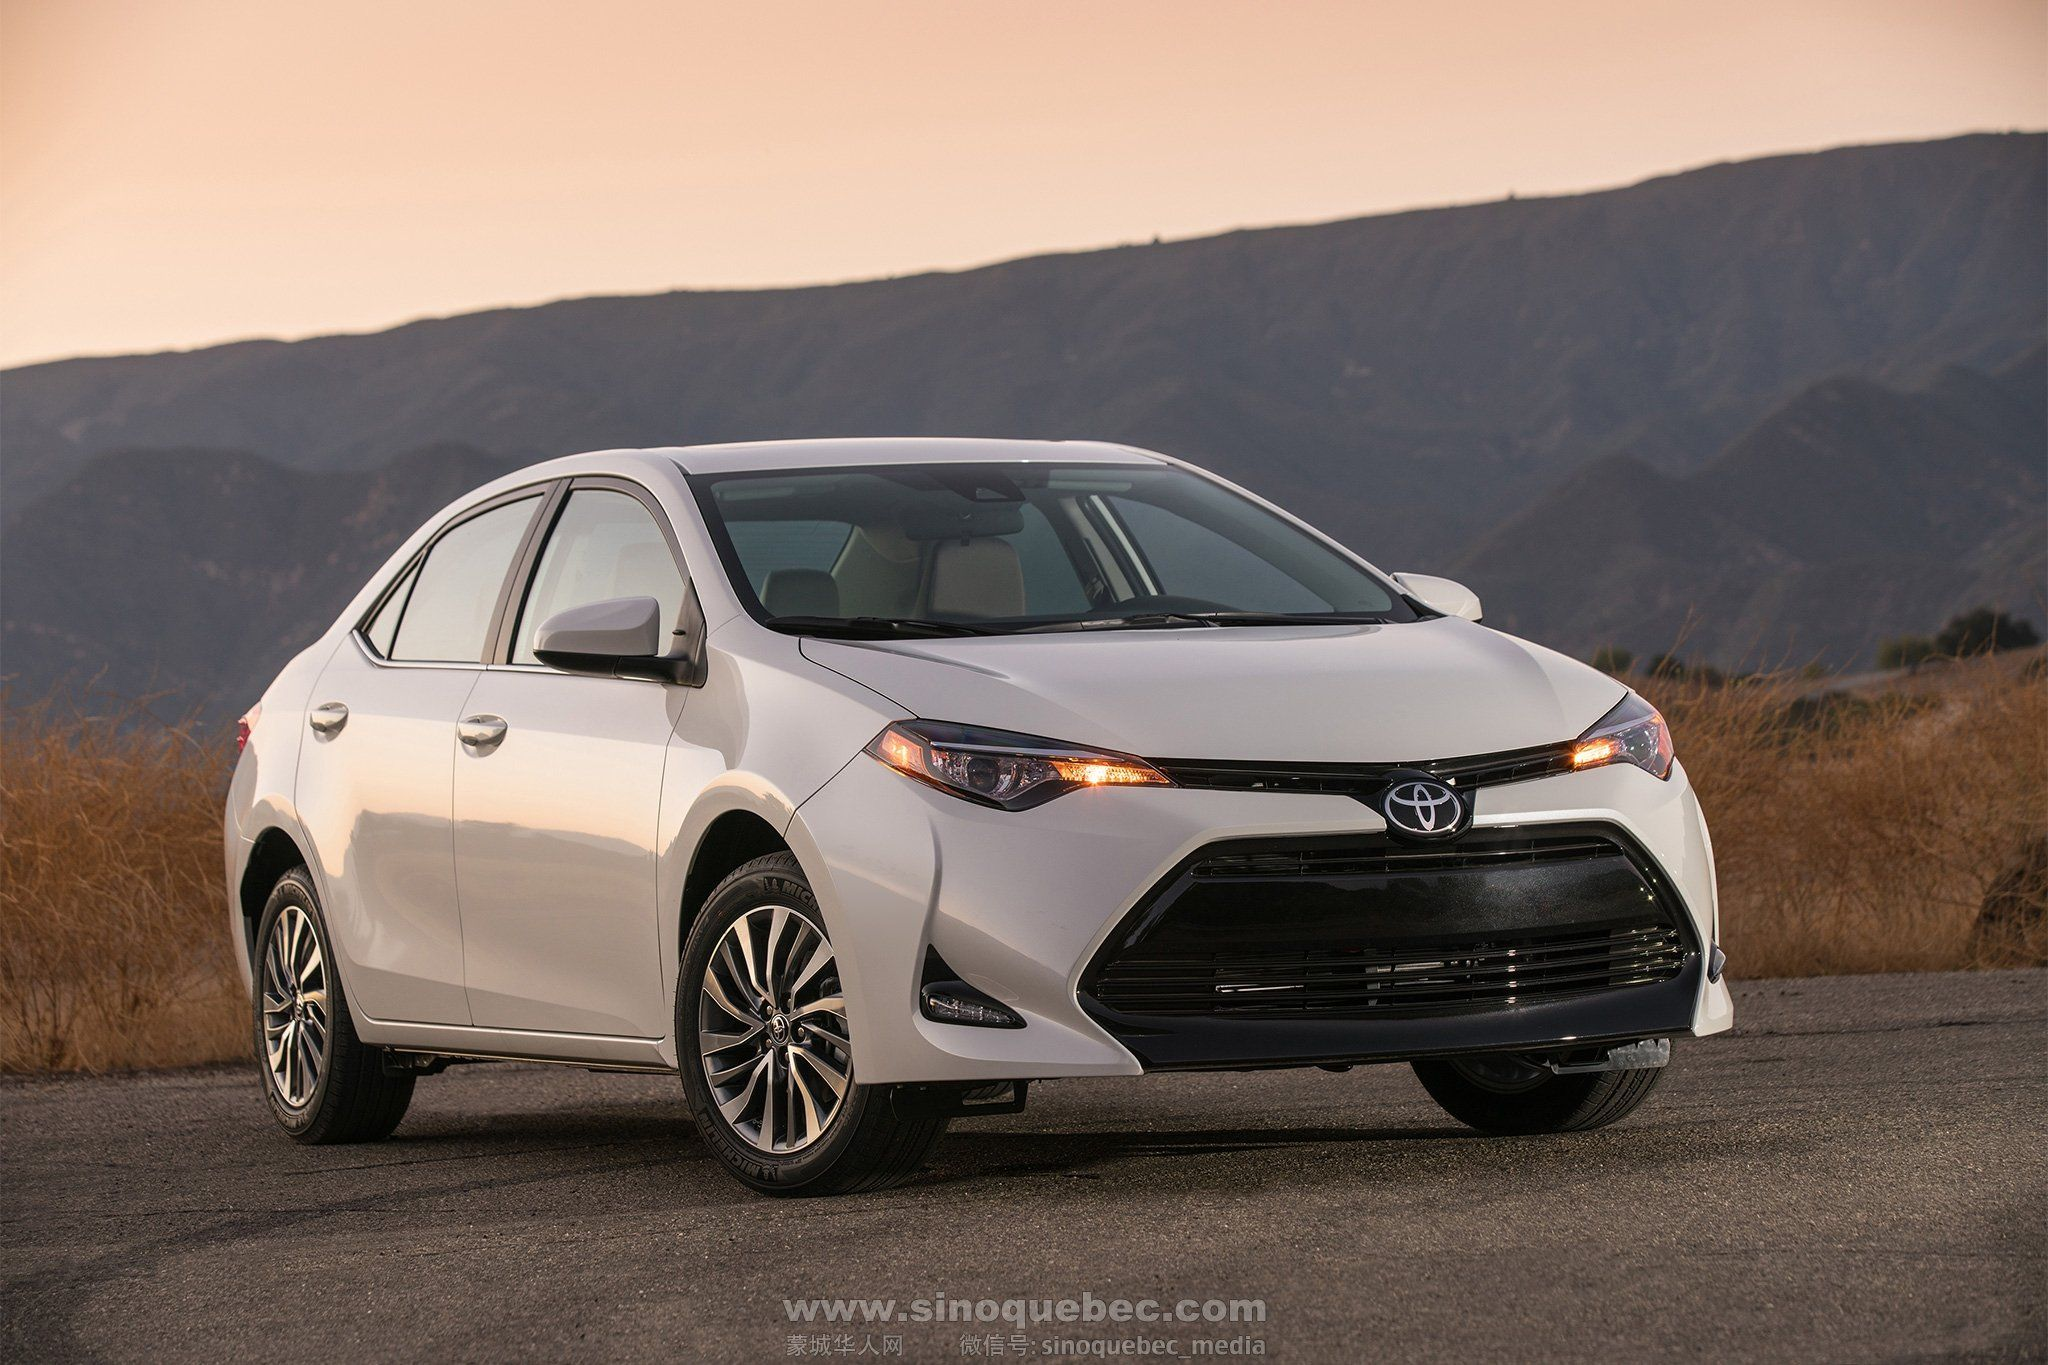 2017-Toyota-Corolla-ECO-front-three-quarter-02.jpg